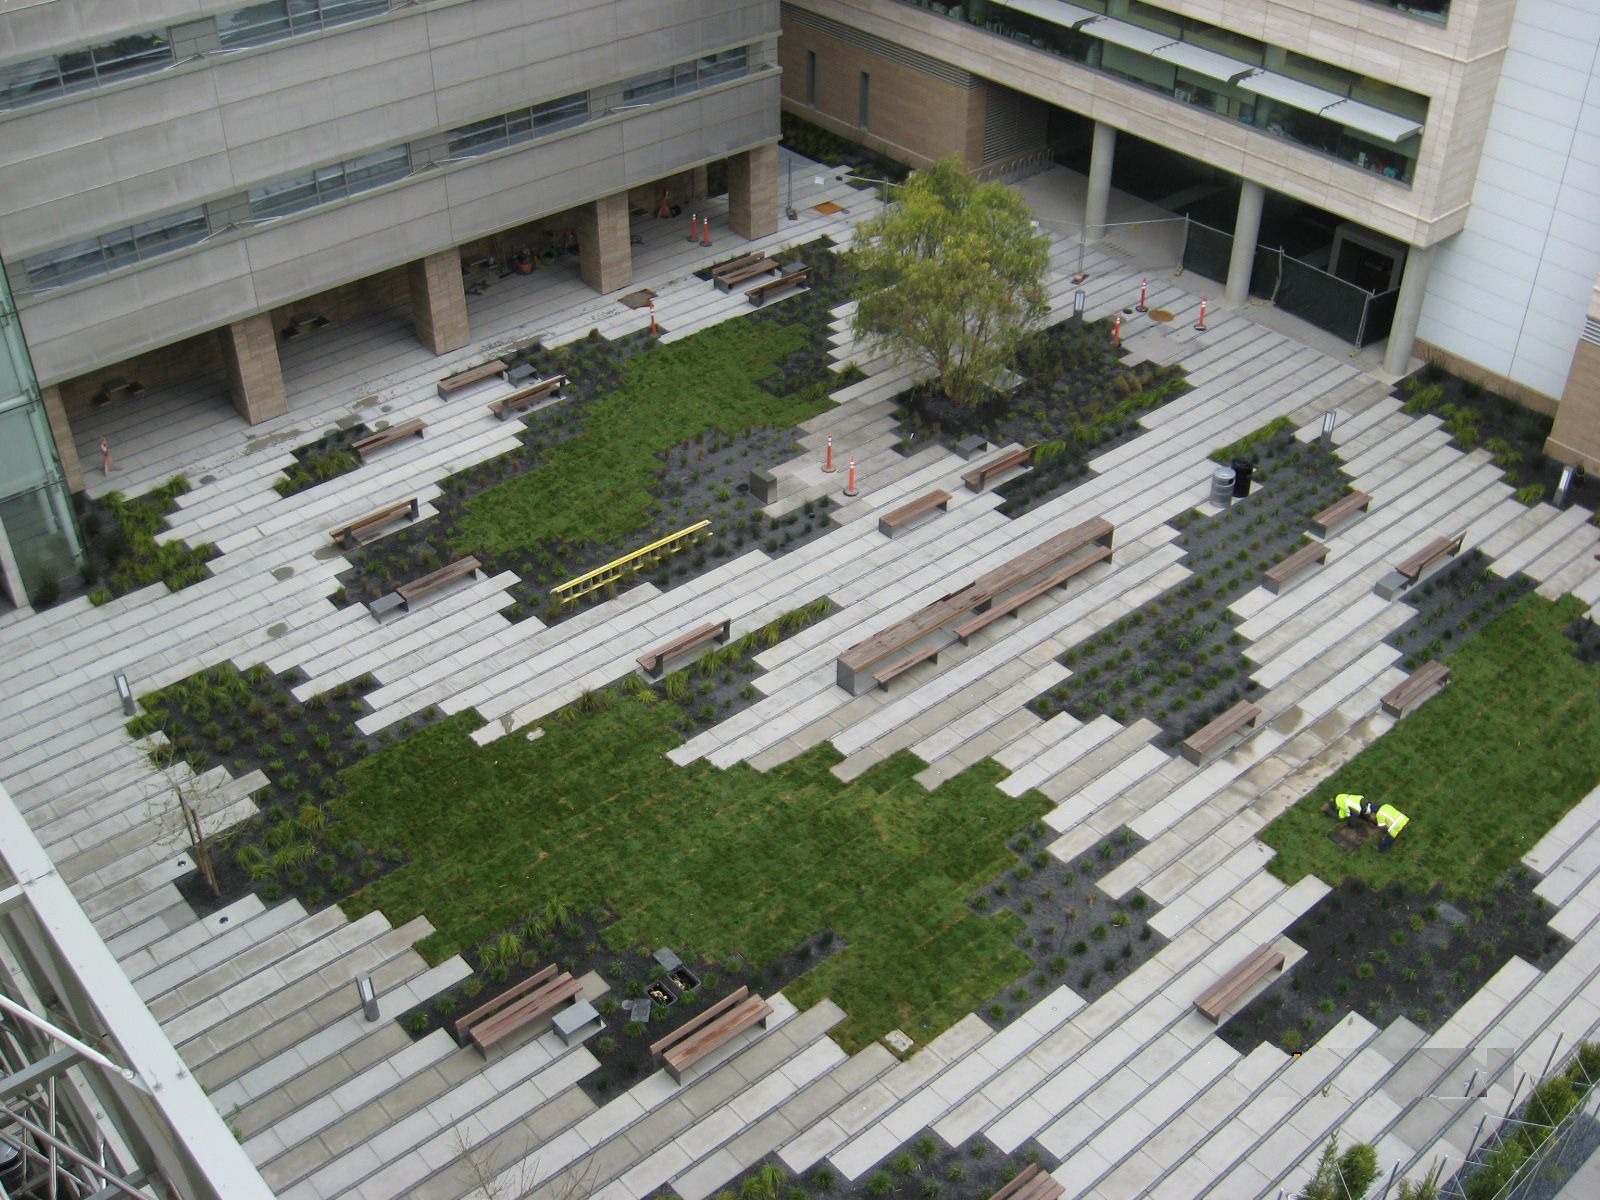 leed stormwater credit courtyard for detention retention